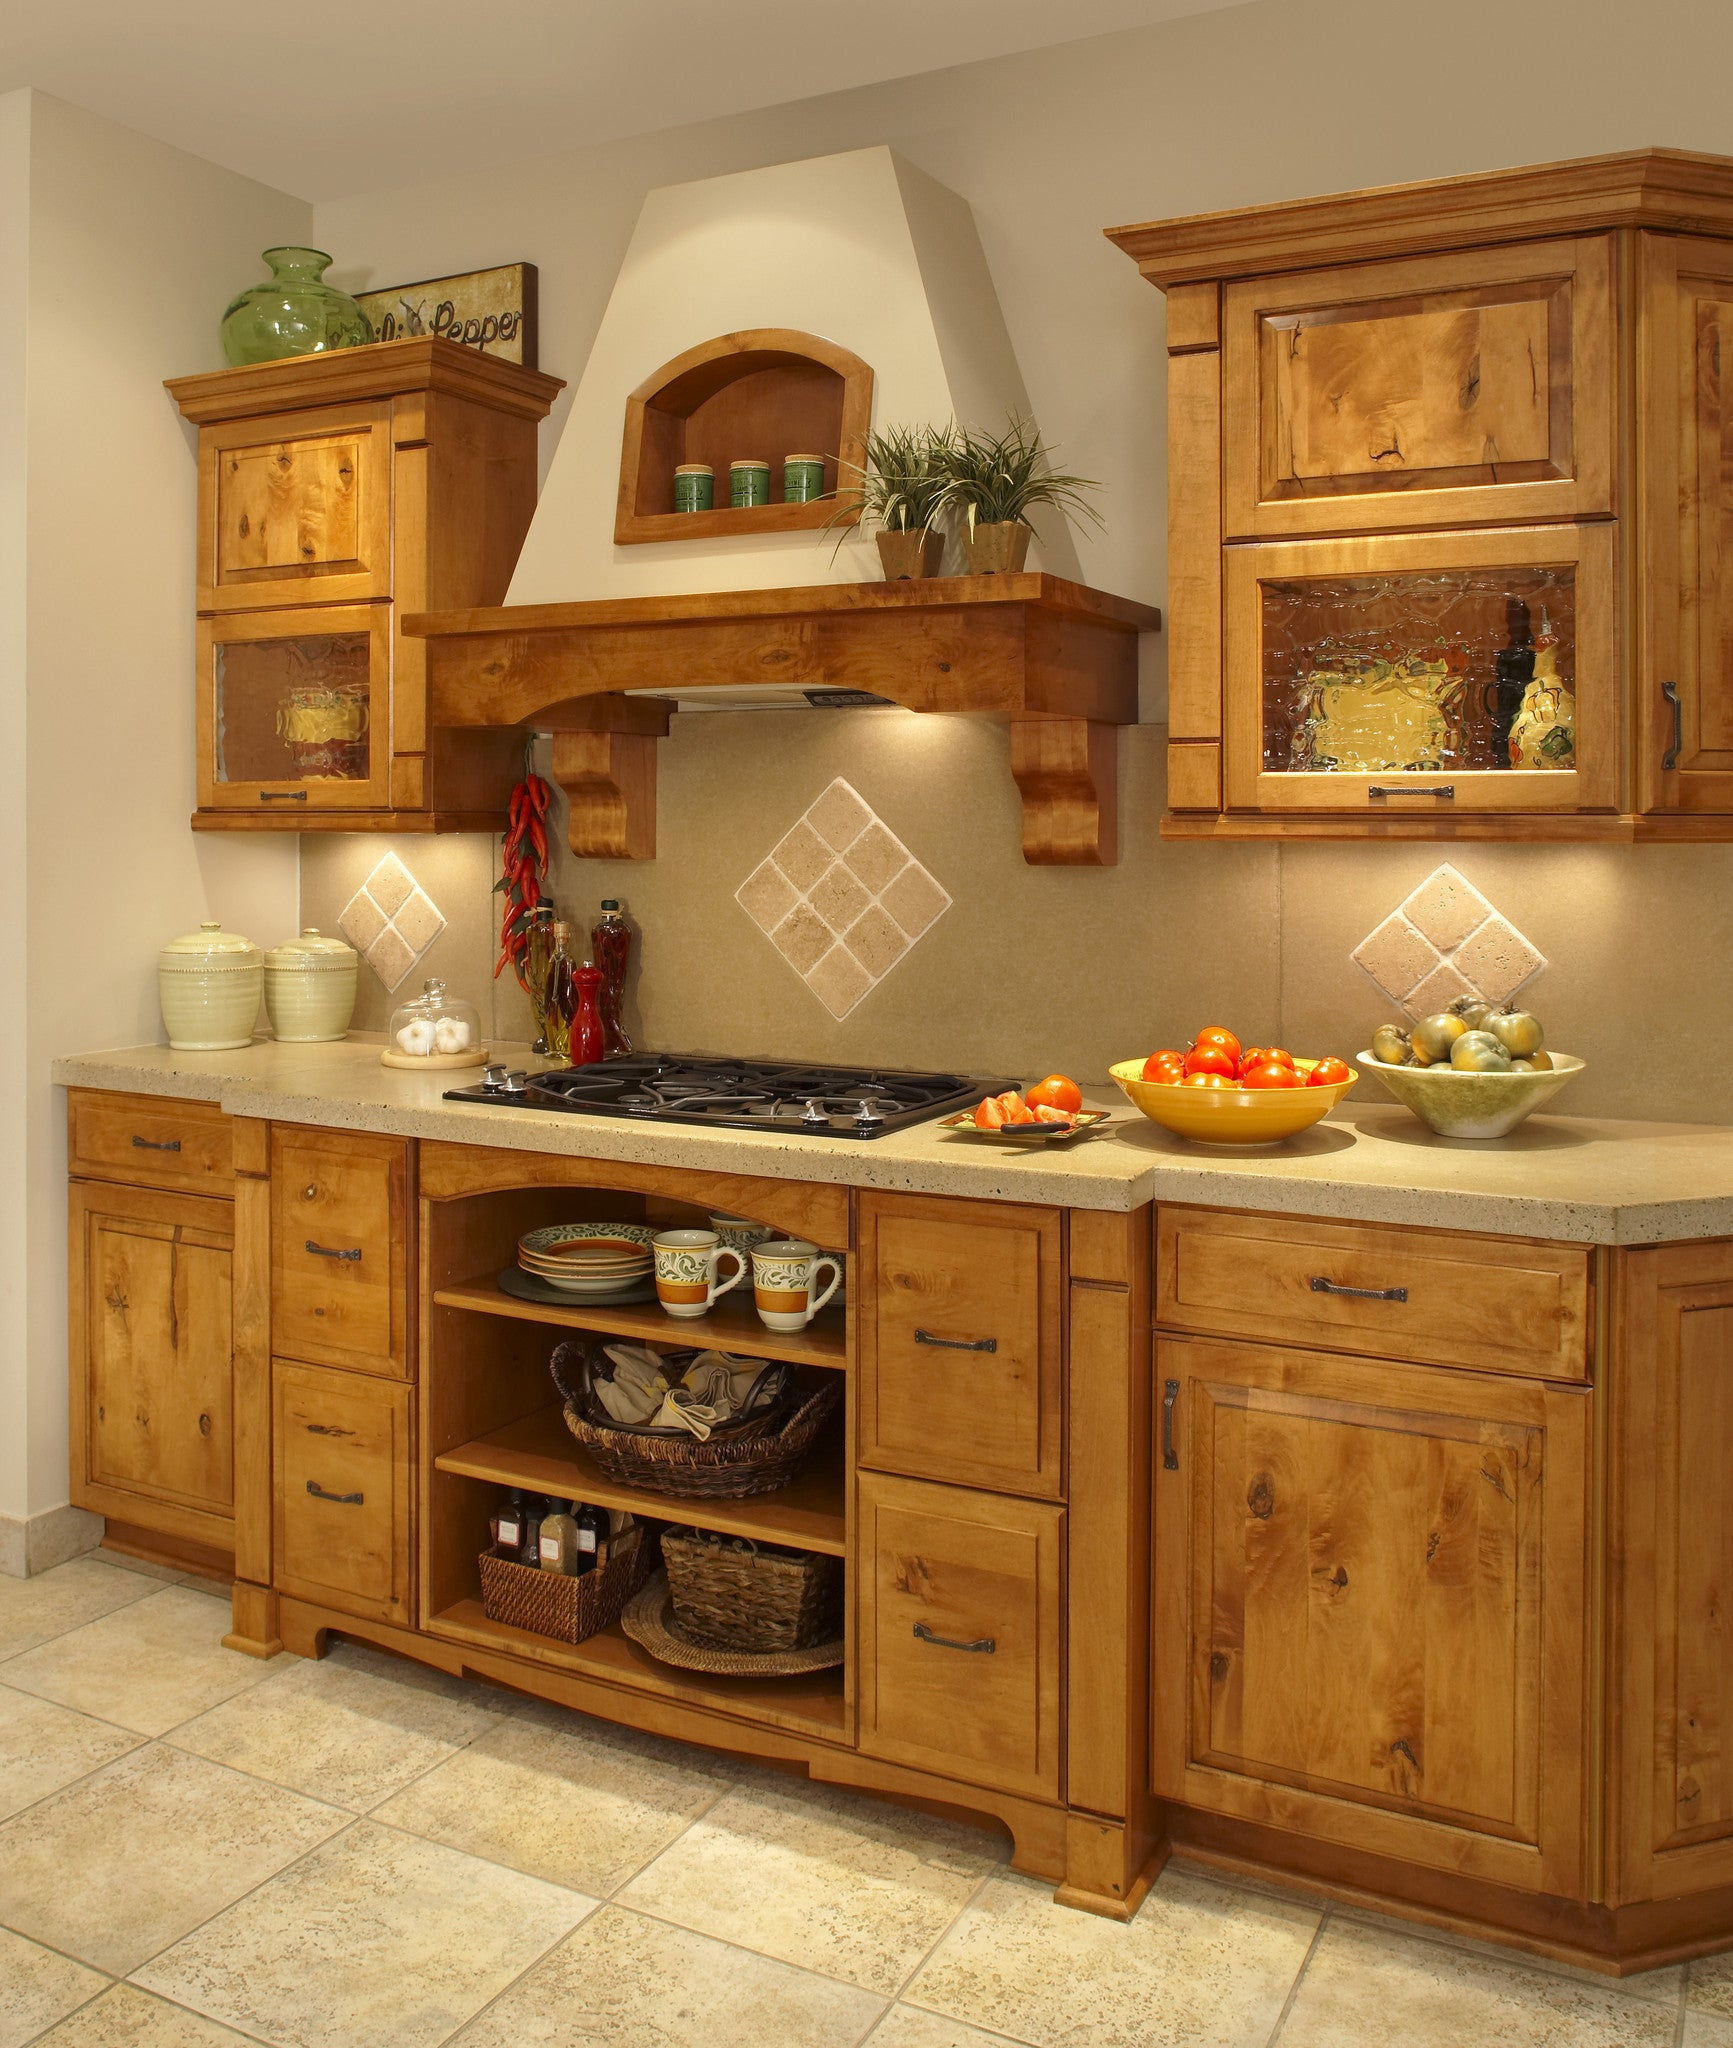 Jamestown Kitchen Lafata Cabinets